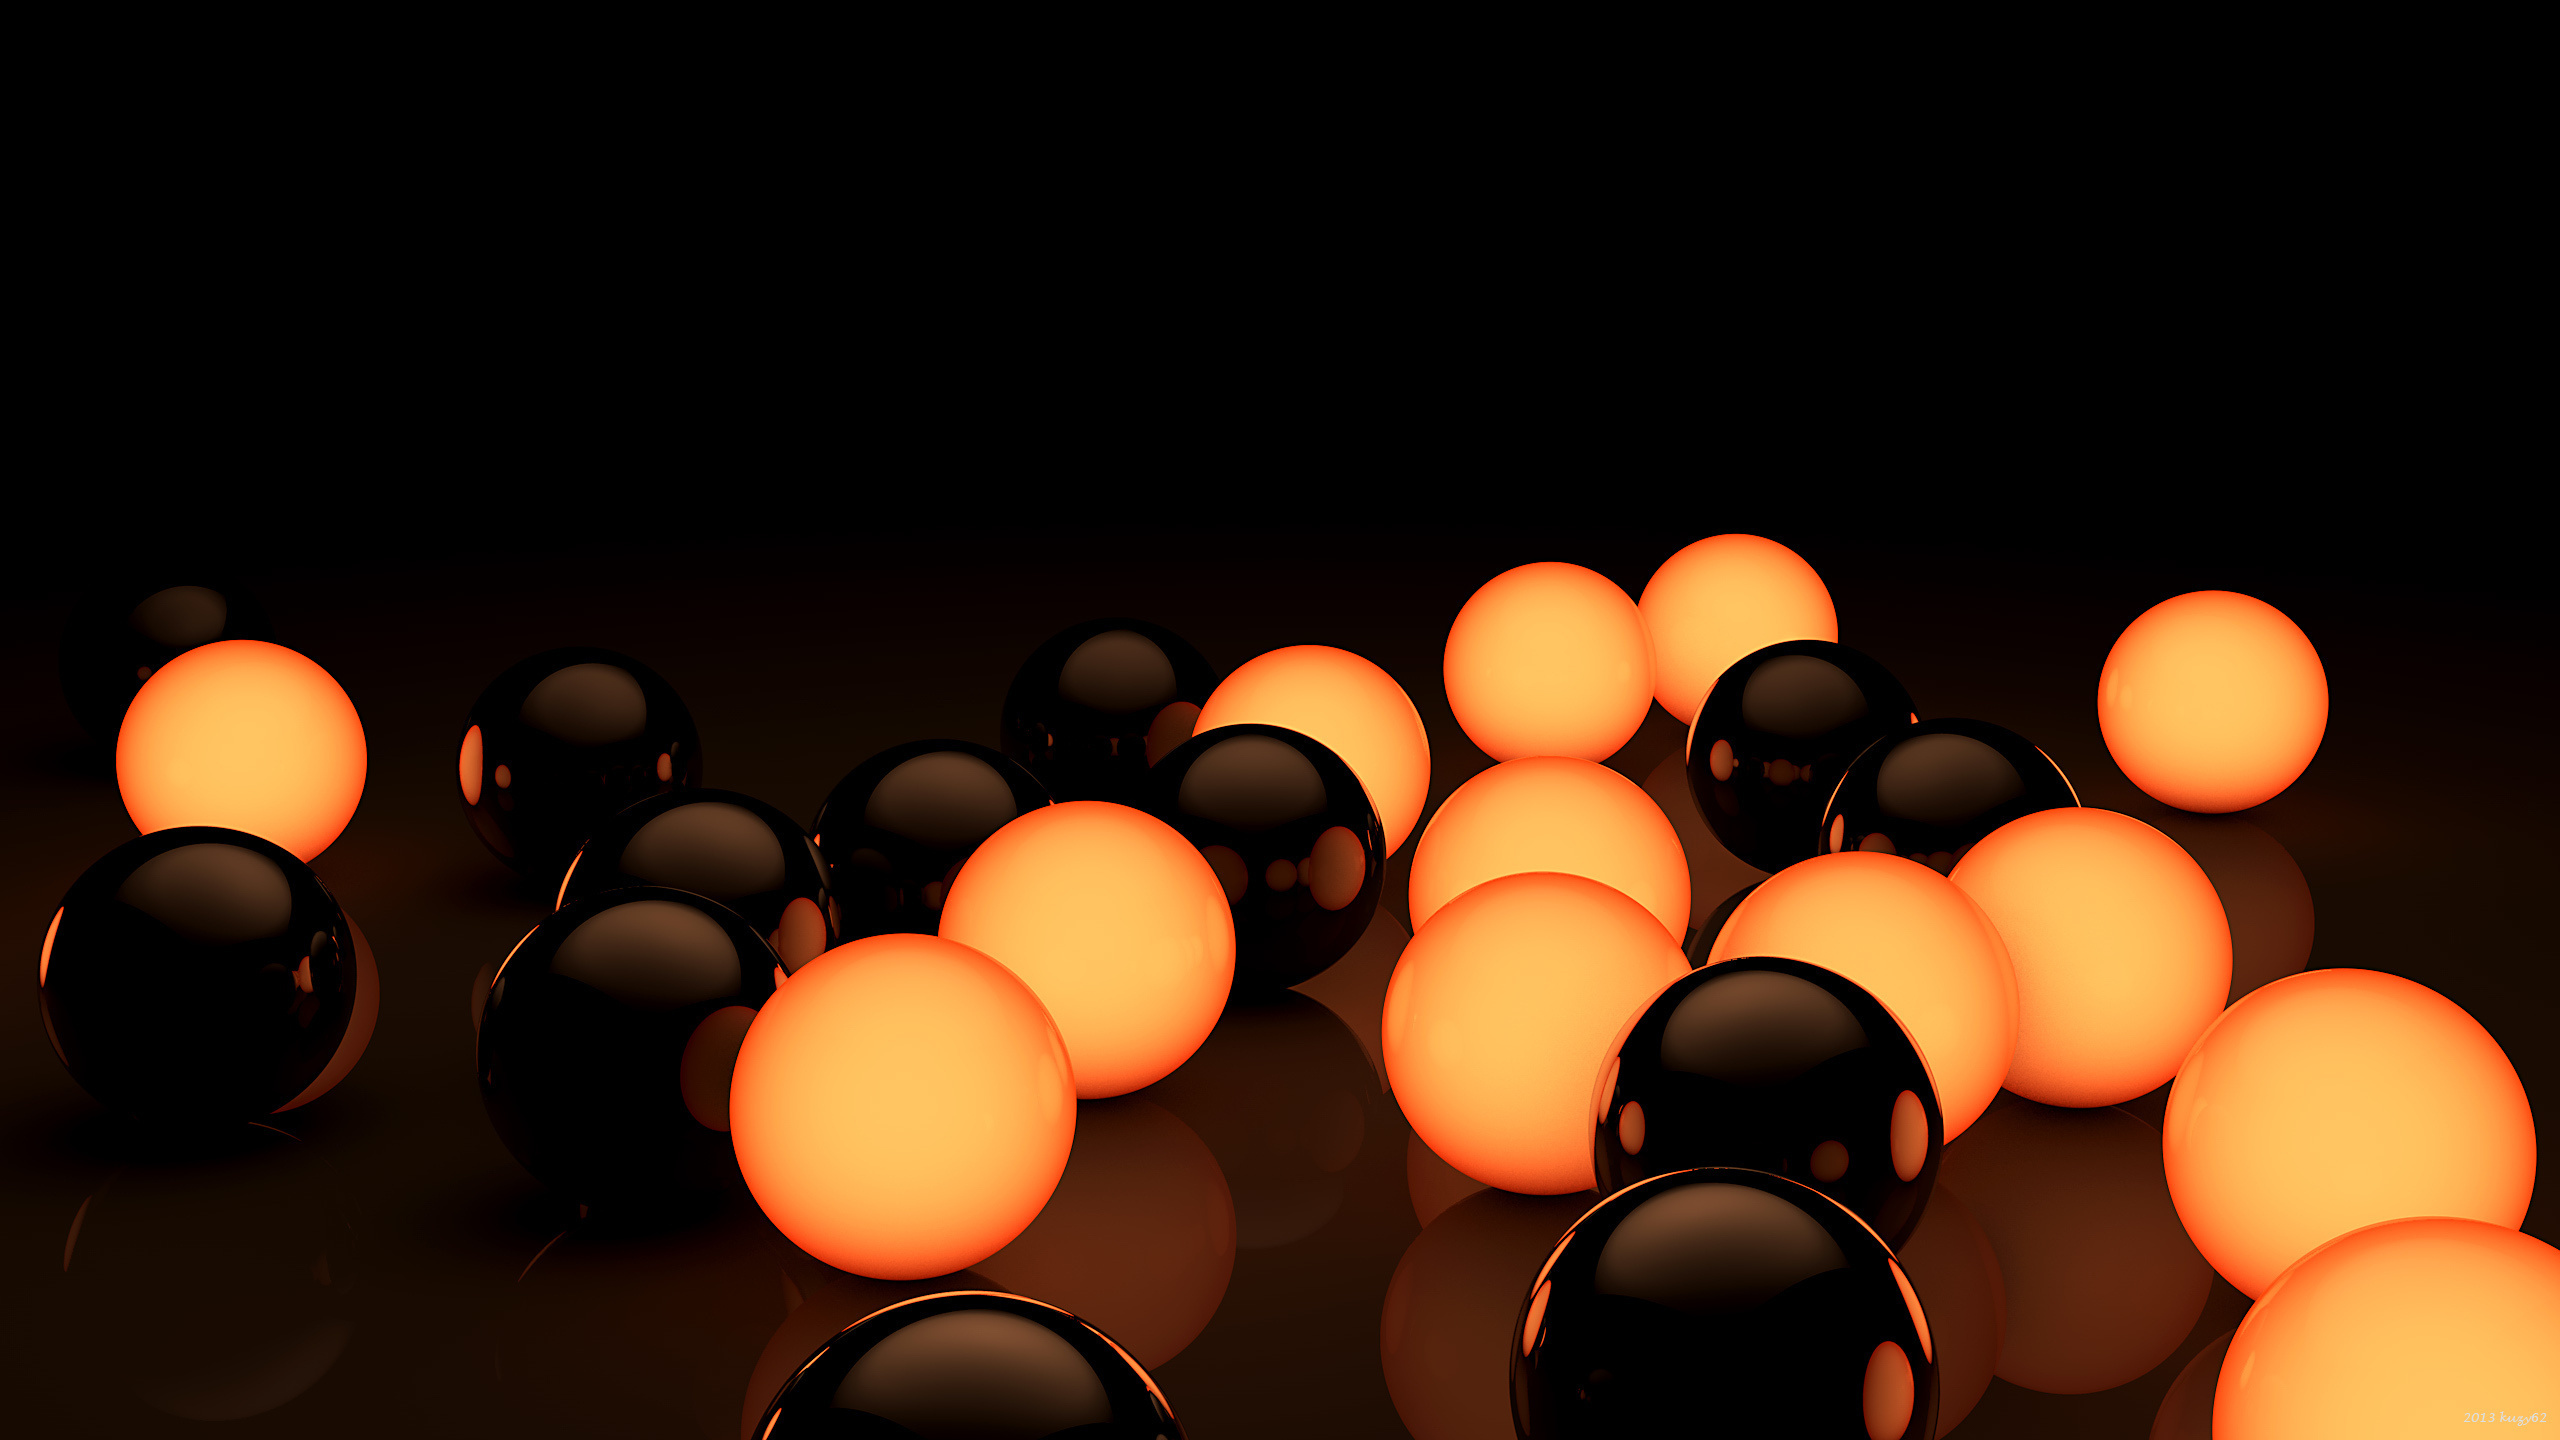 Black and orange bubbles in wallpaper 3d 4234897 for Black 3d wallpaper